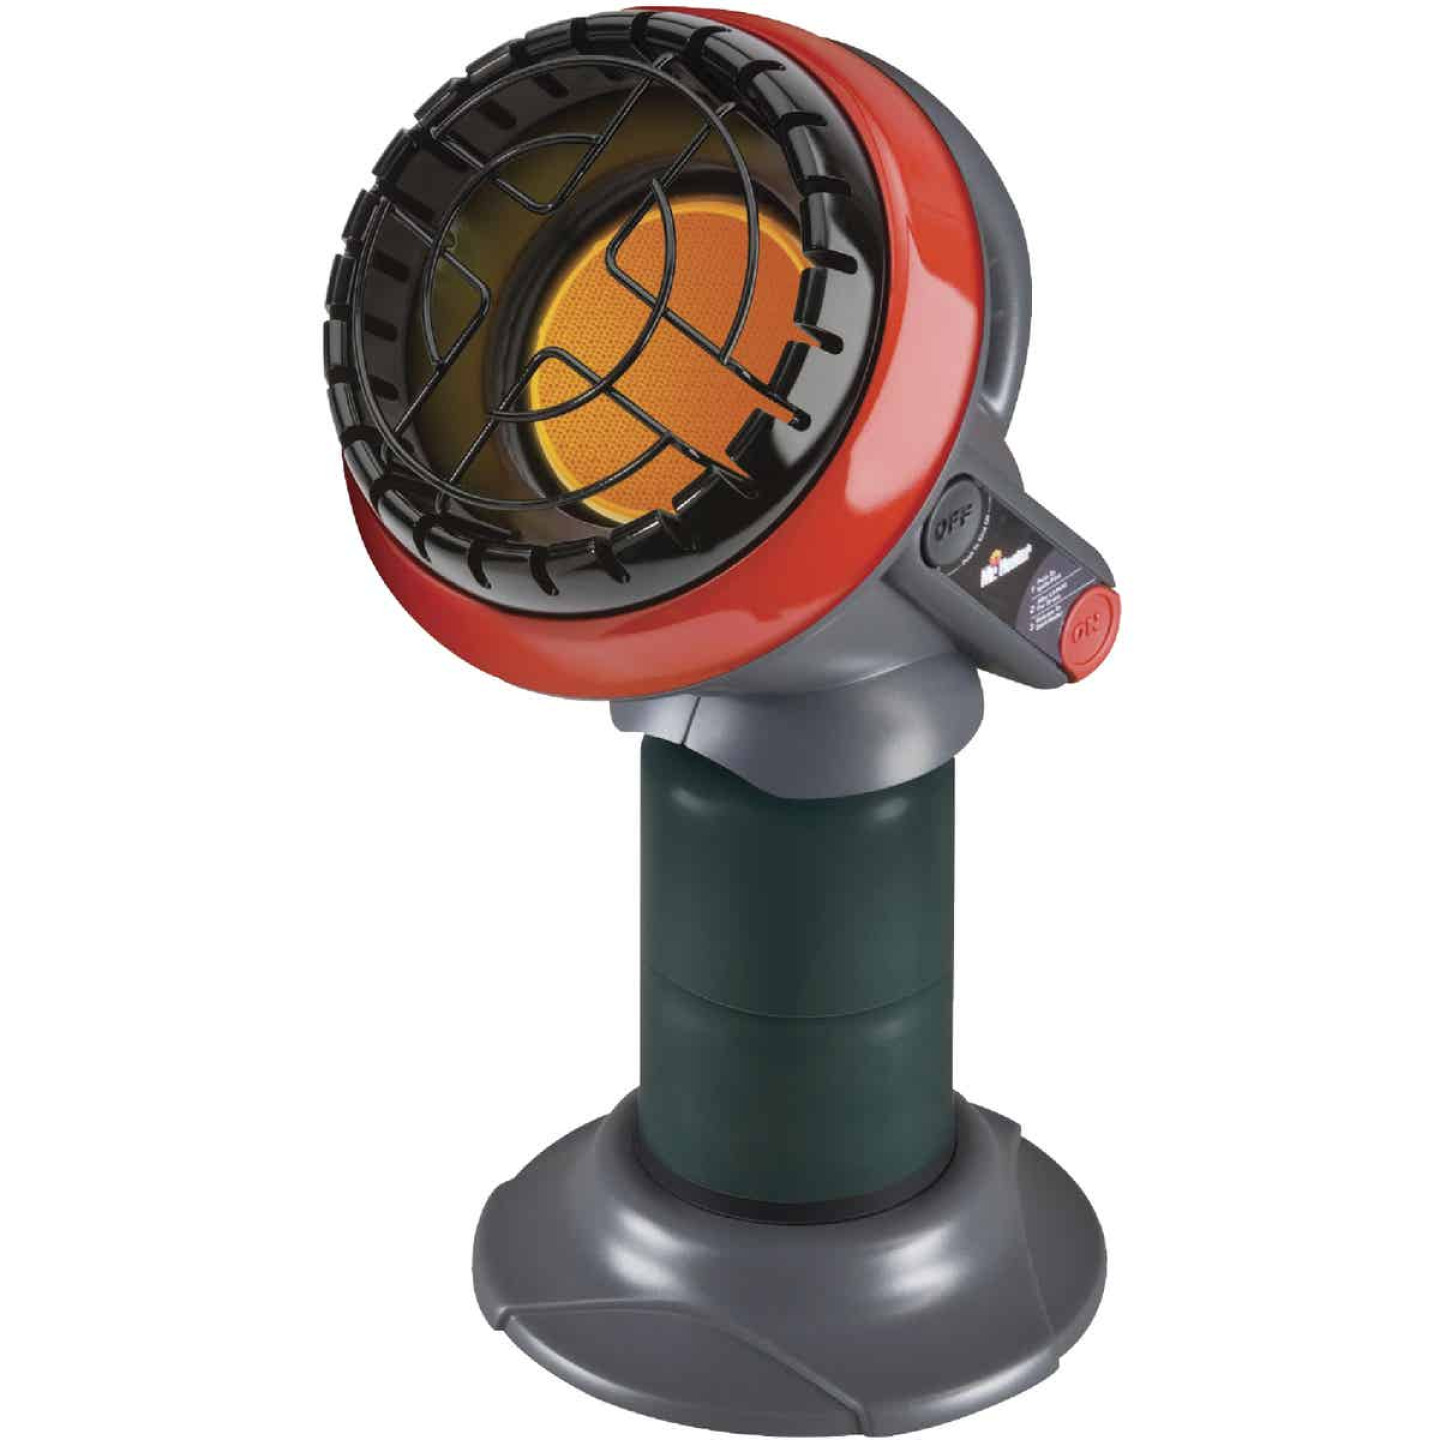 MR. HEATER 3800 BTU Radiant Little Buddy Propane Heater Image 1